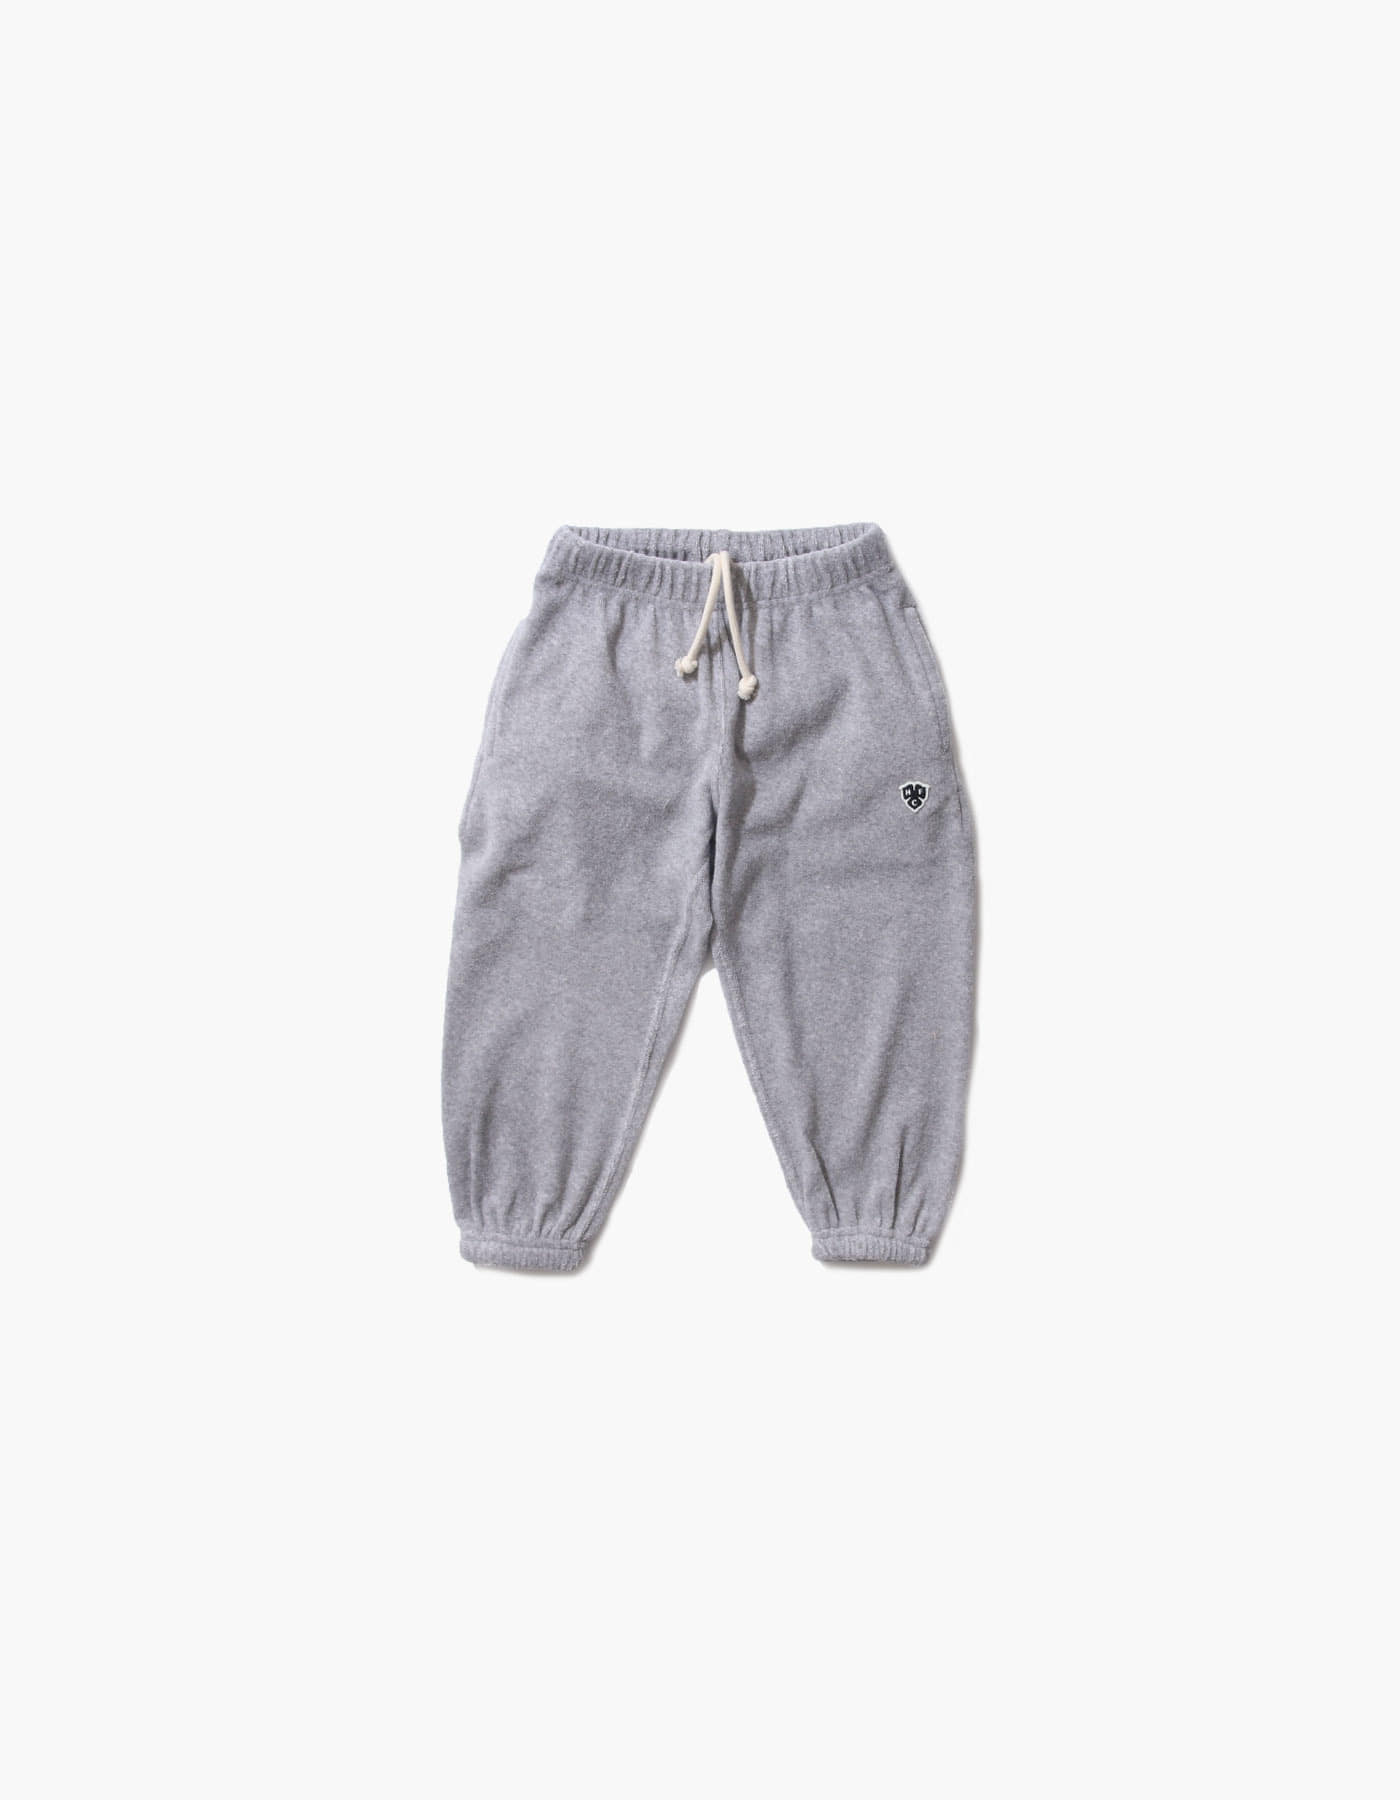 HFC CREST KIDS TOWEL JOGGER PANTS / M.GREY(5%)